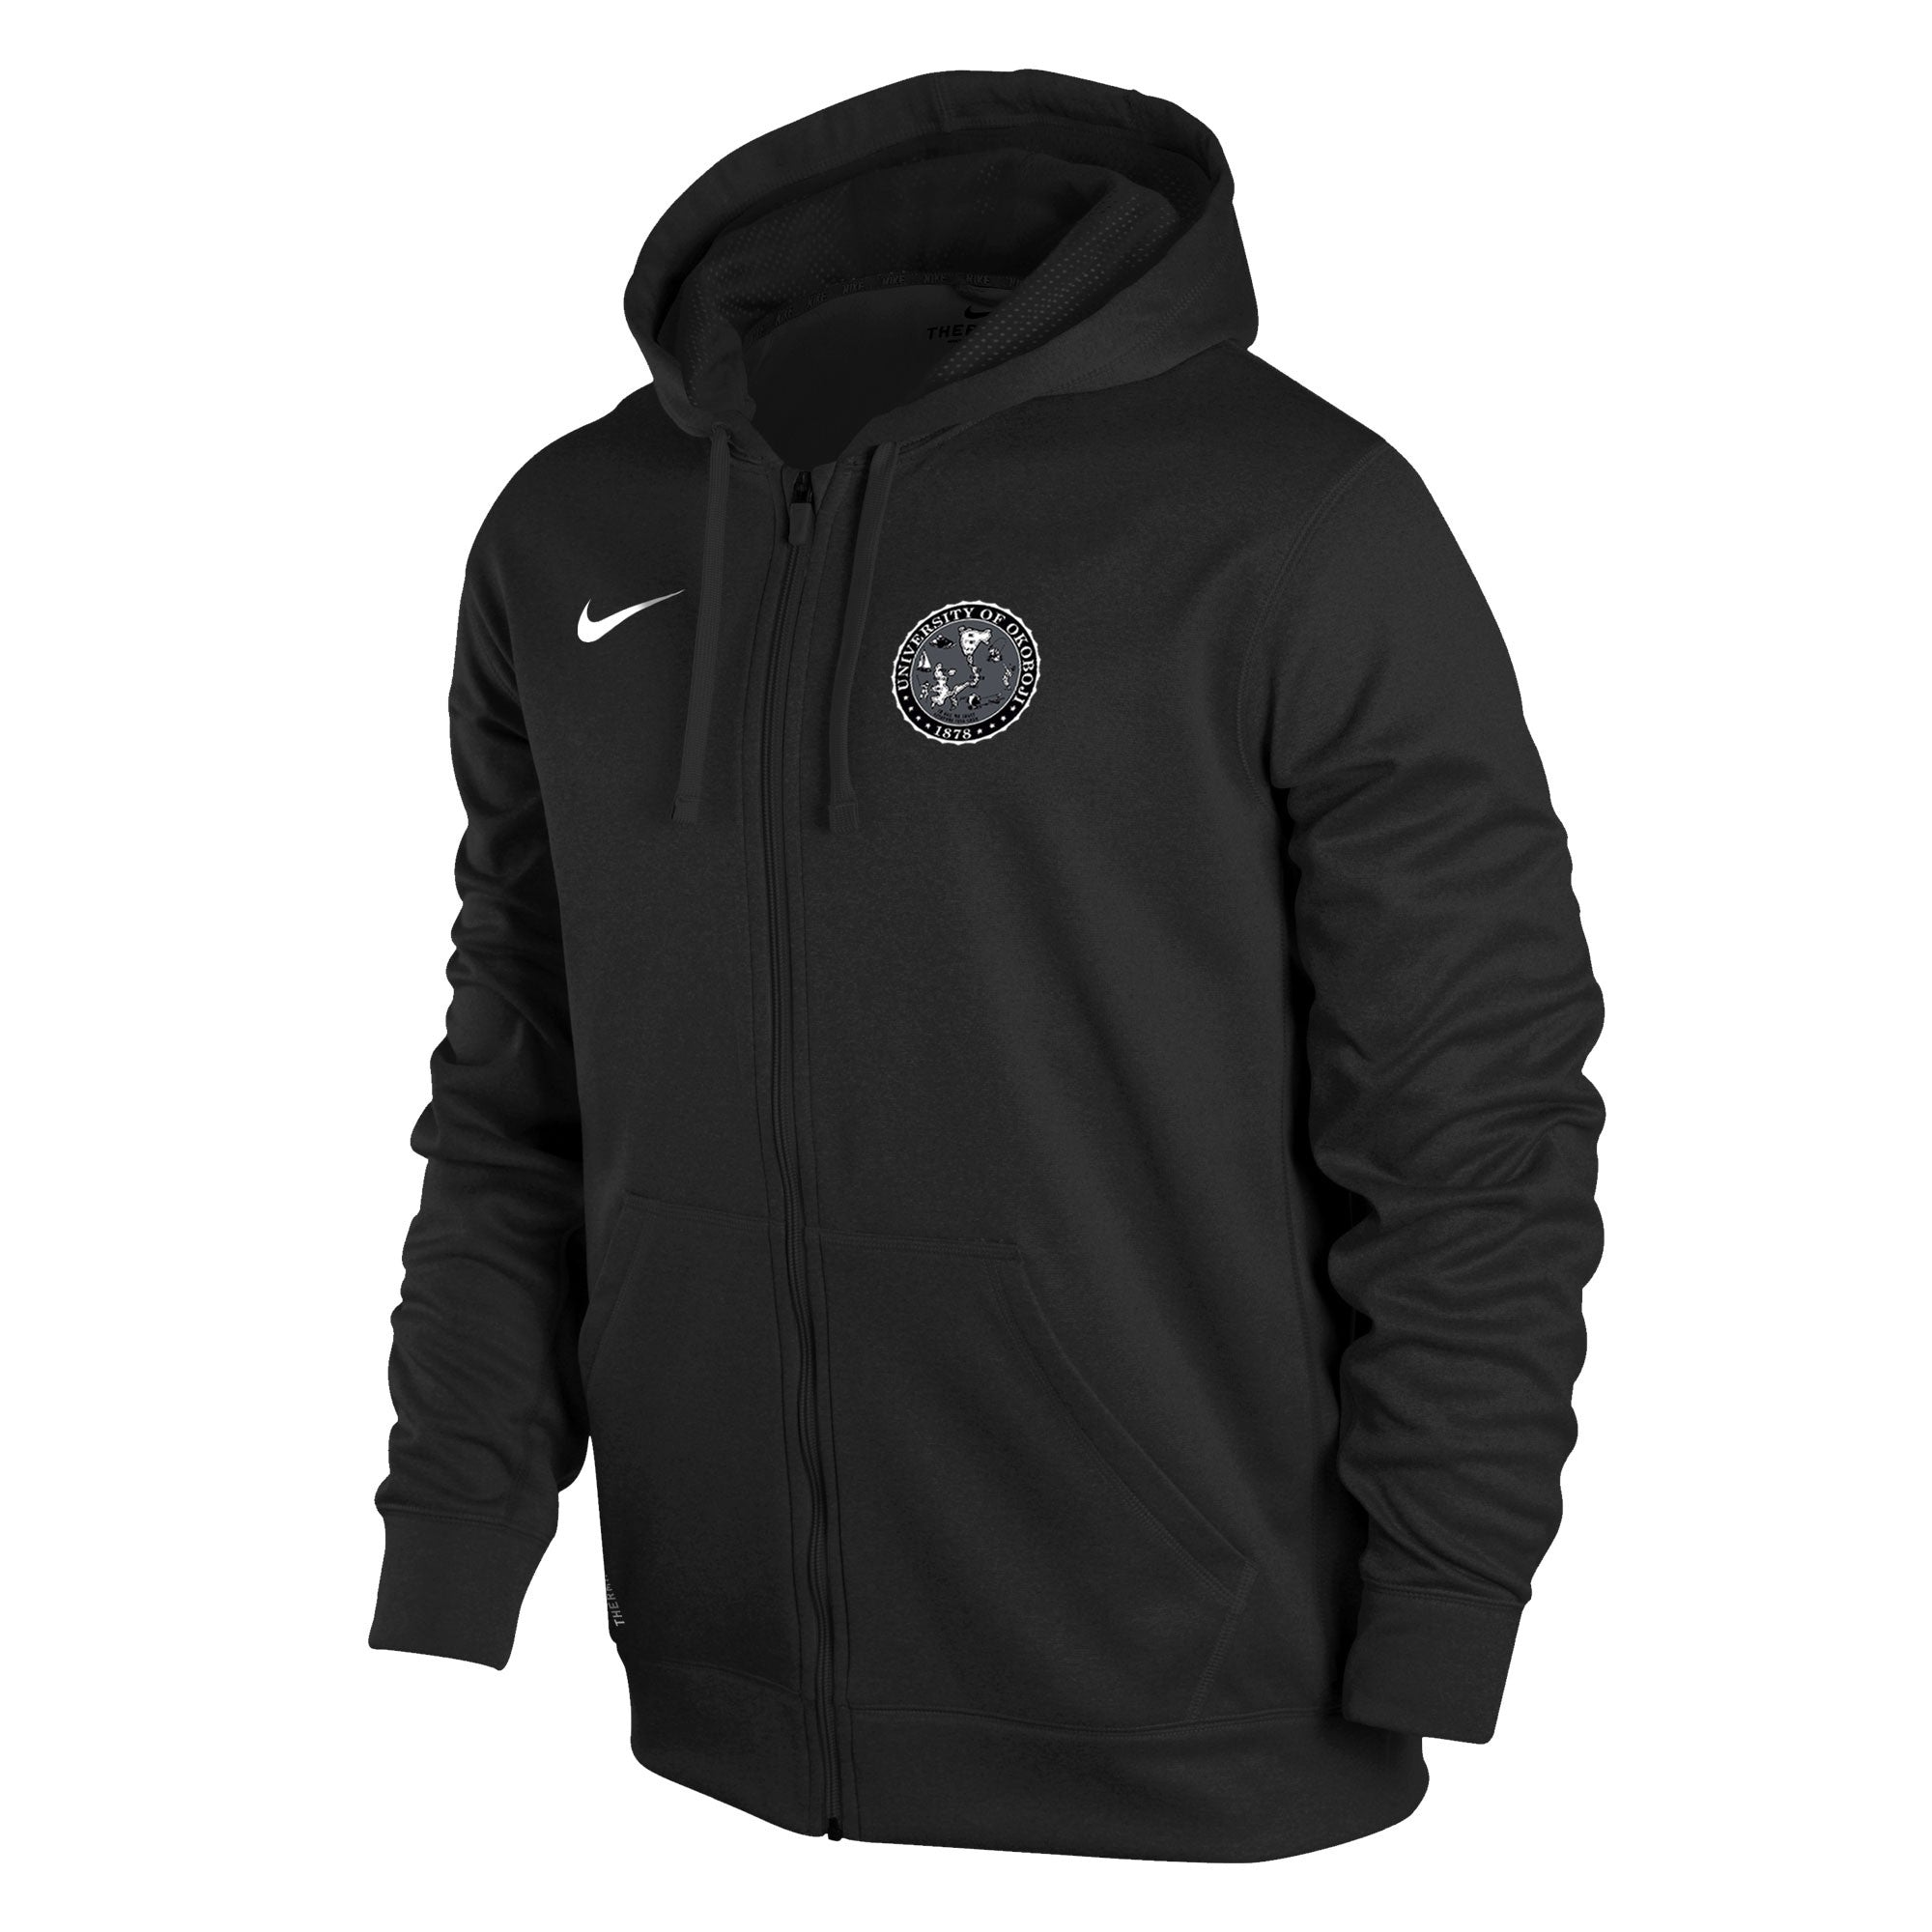 b4cad9f8ecba Men s Nike Therma-FIT KO Full-Zip Hoody - Black - The Three Sons